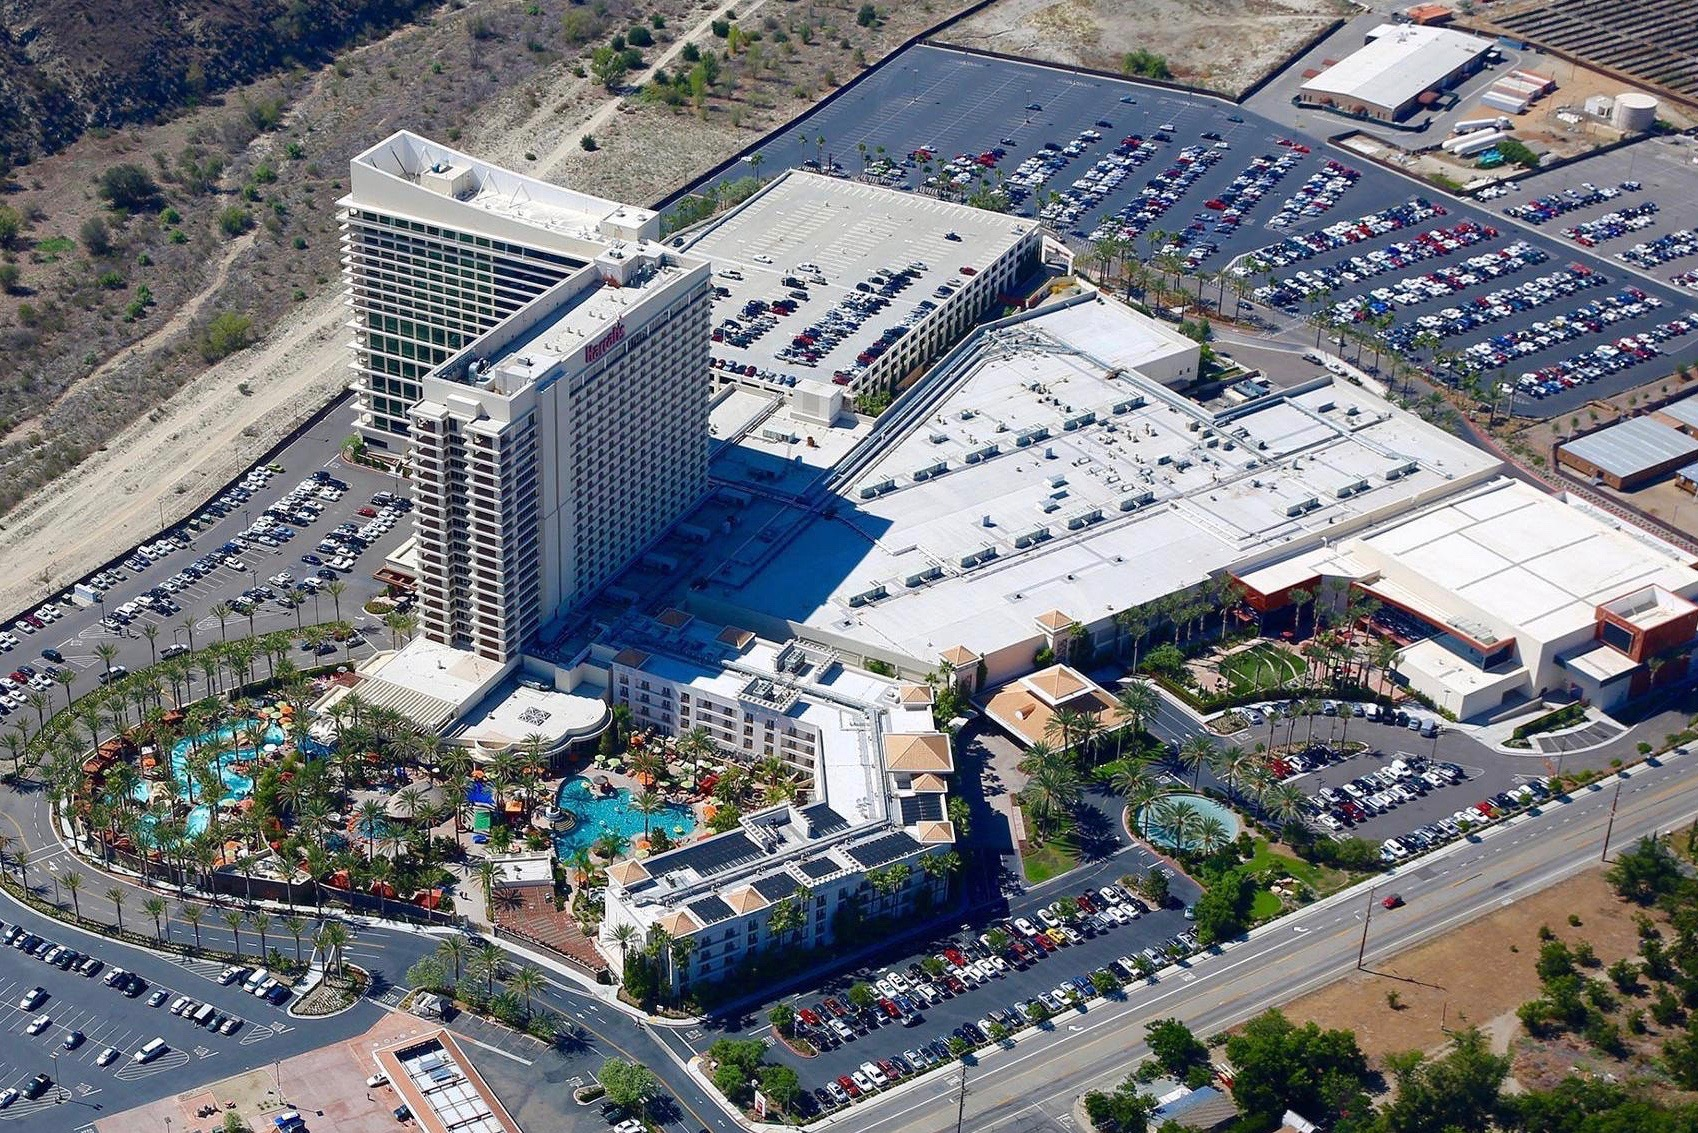 Rincon Band offers more amenities with $14M casino expansion